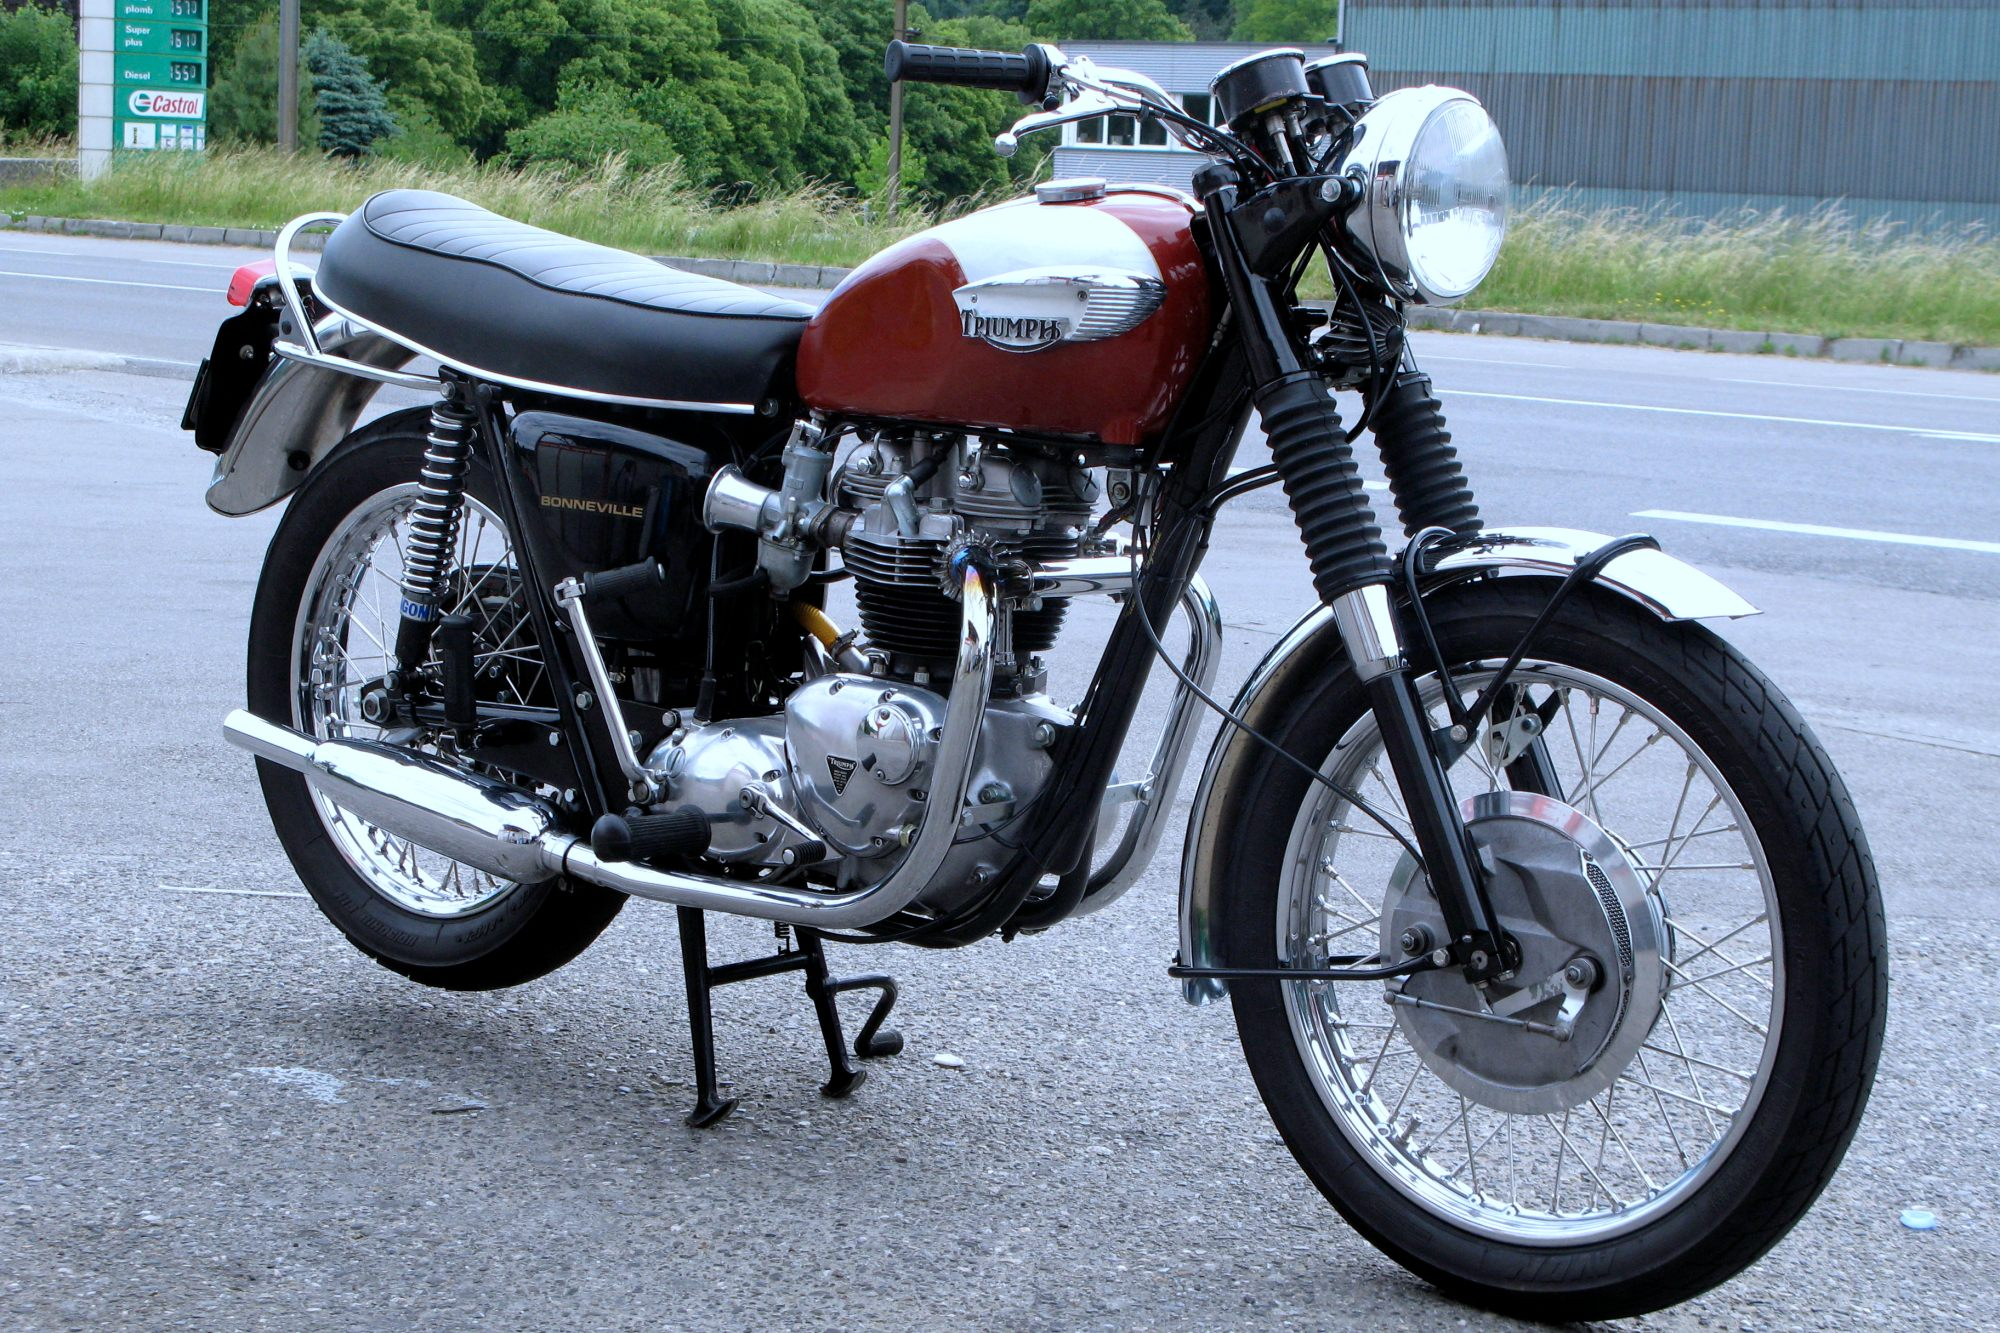 hight resolution of file triumph bonneville img 2734 jpg